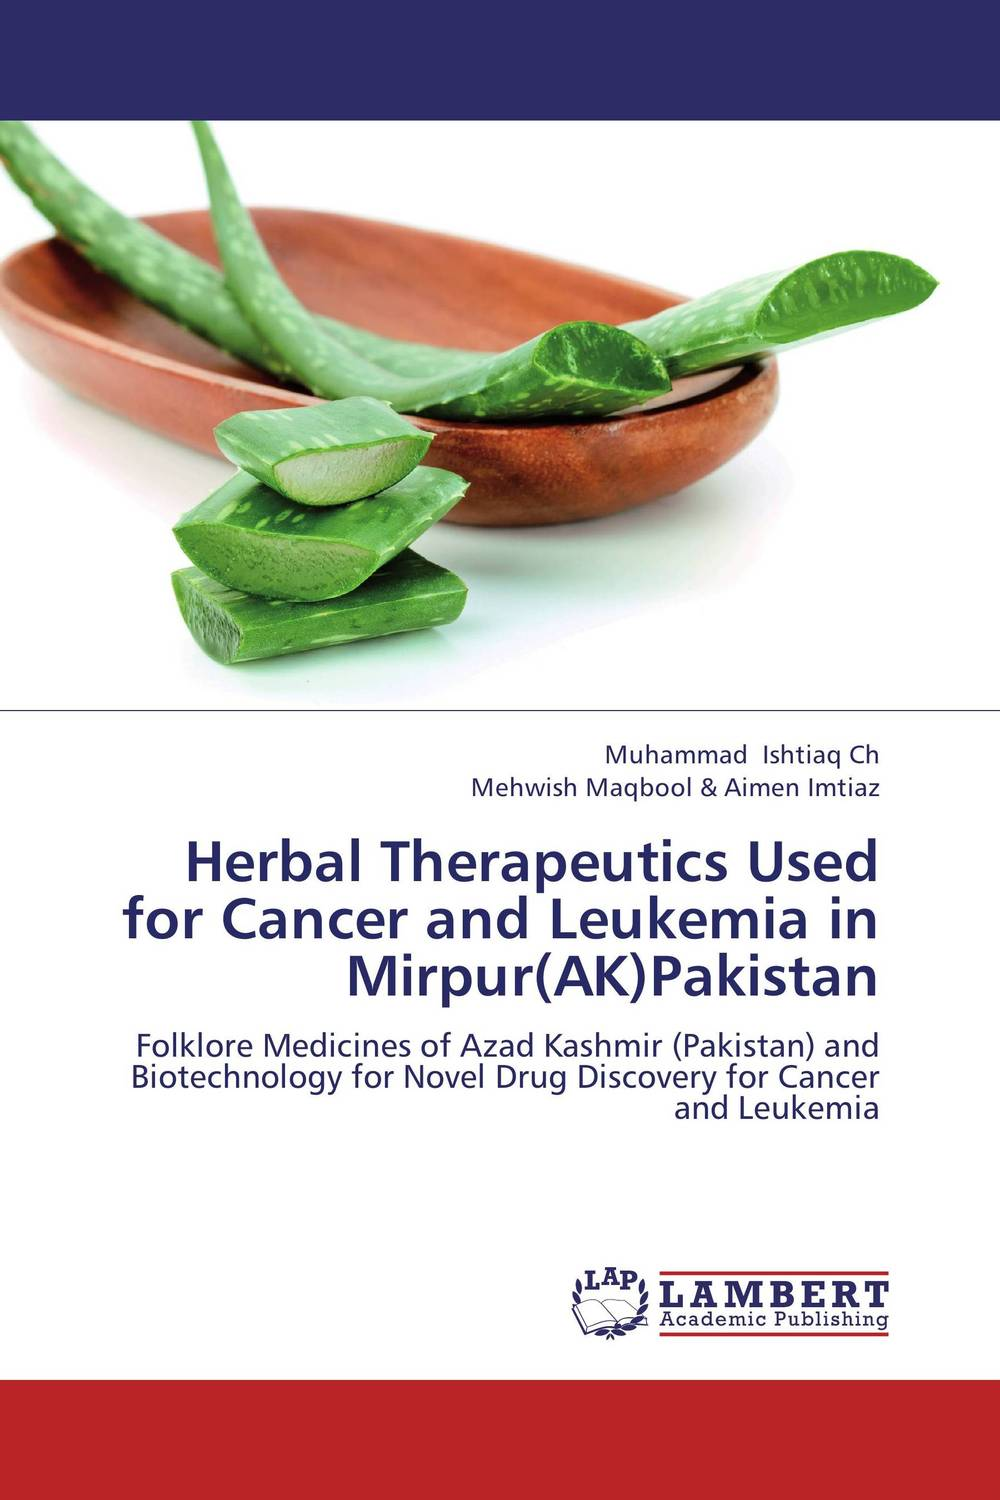 Herbal Therapeutics Used for Cancer and Leukemia in Mirpur(AK)Pakistan viruses cell transformation and cancer 5